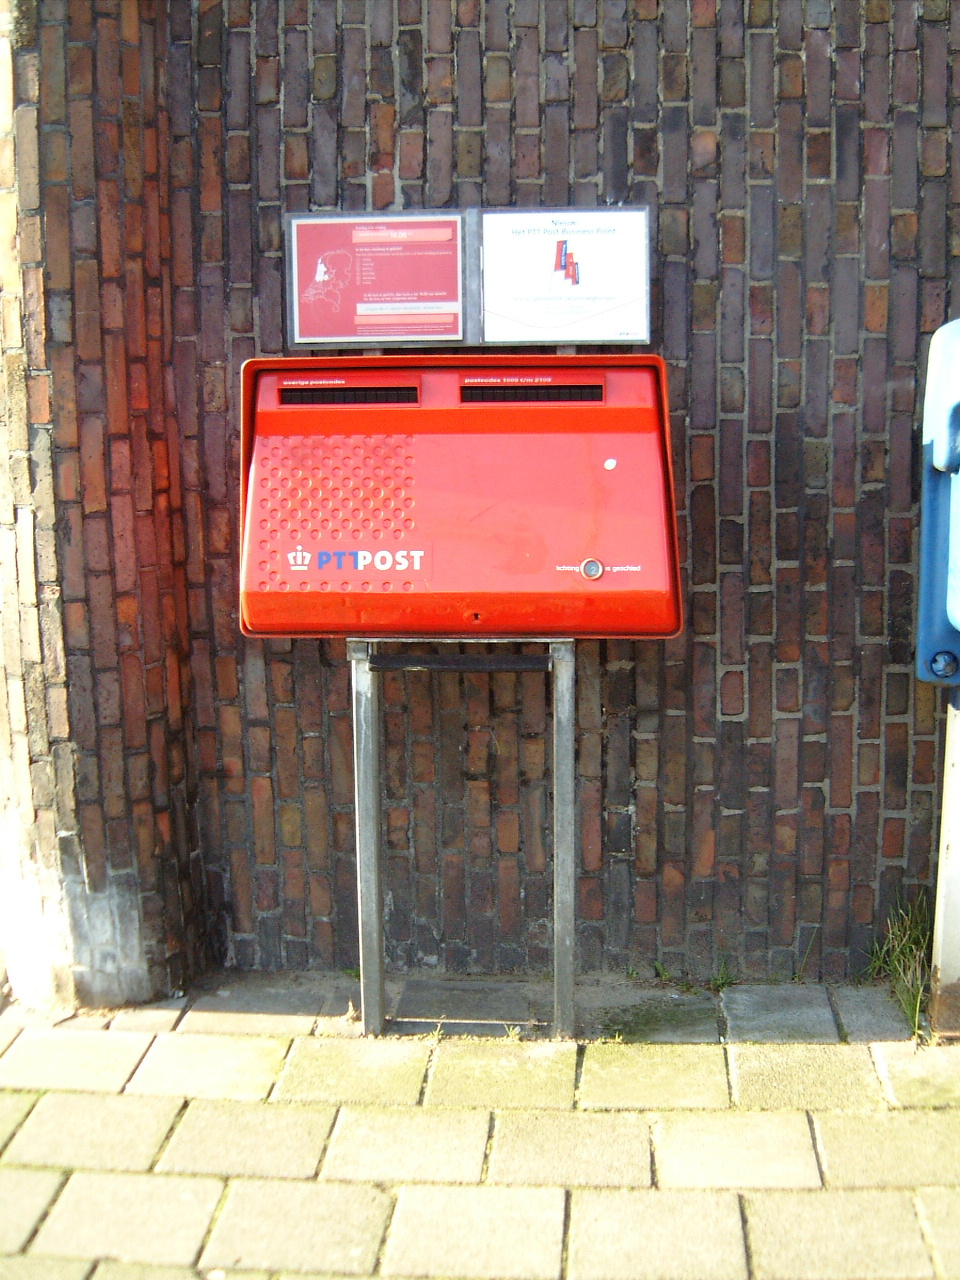 post box letter box postbox letterbox letters posting red slot postal ptt maarten maartent